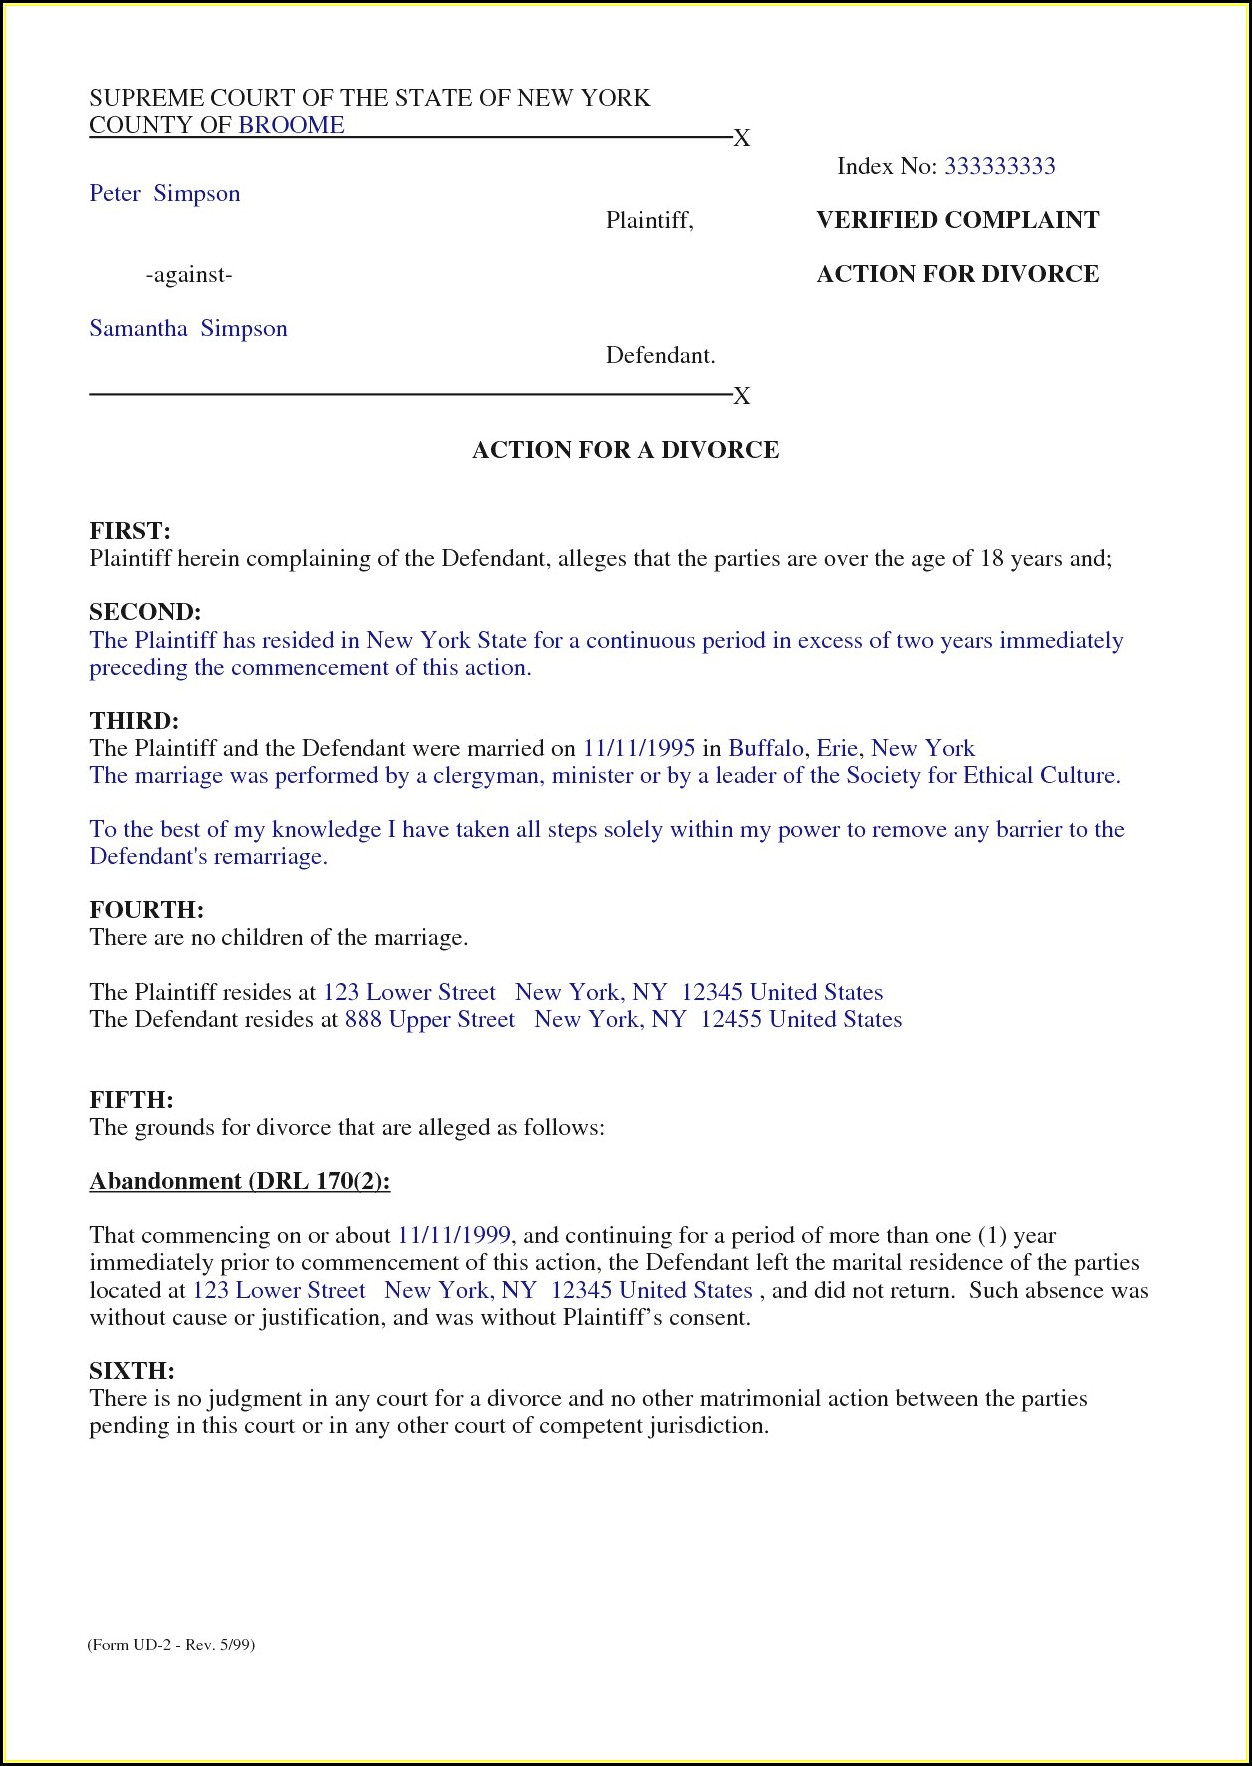 Marriage Separation Agreement Template Free